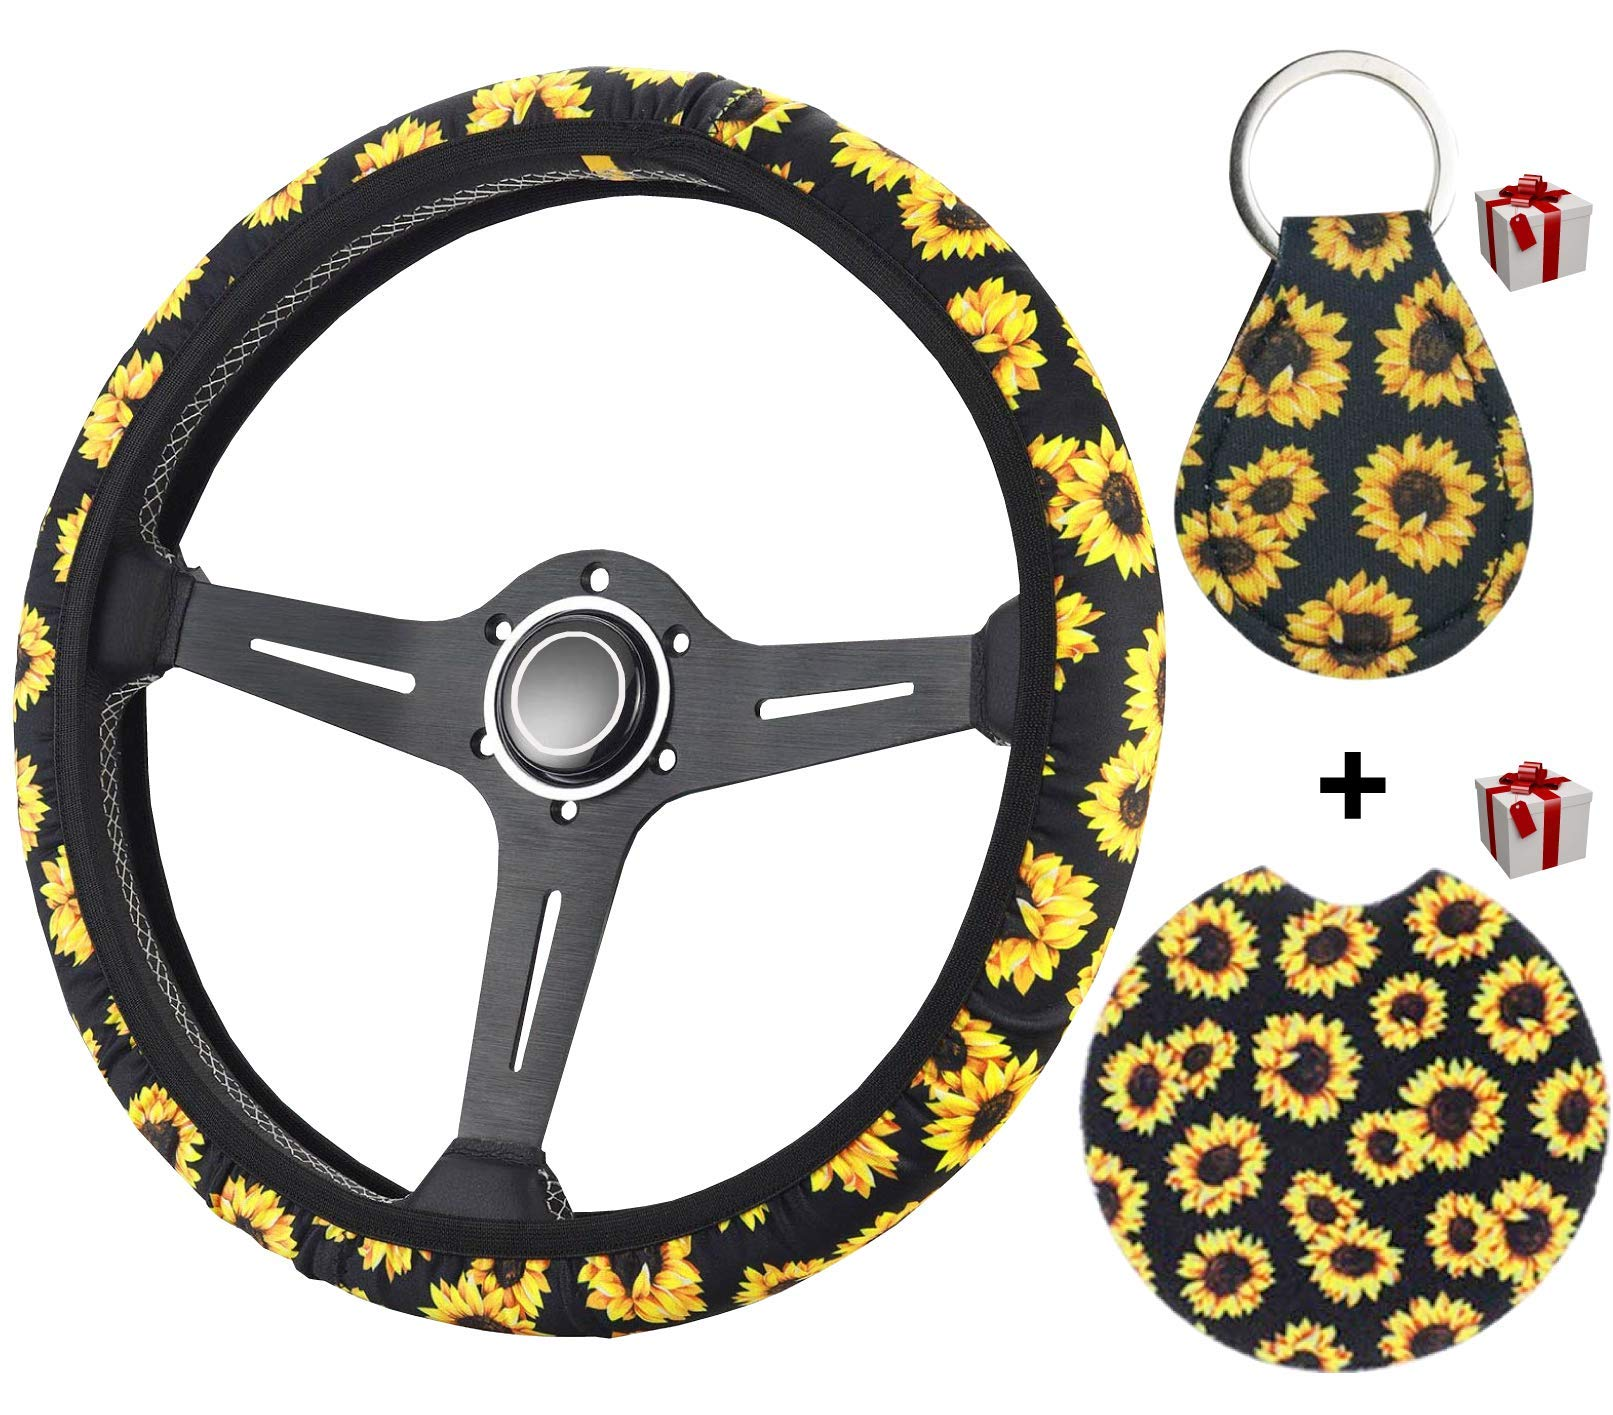 2 Pieces Sunflowers Keyrings 2 Pieces Car Cup Holder Coaster and 4 Pieces Car Vent Clips for Car Decoration 10 Pieces Sunflower Car Accessories Set Includes 2 Pieces Steering Wheel Cover